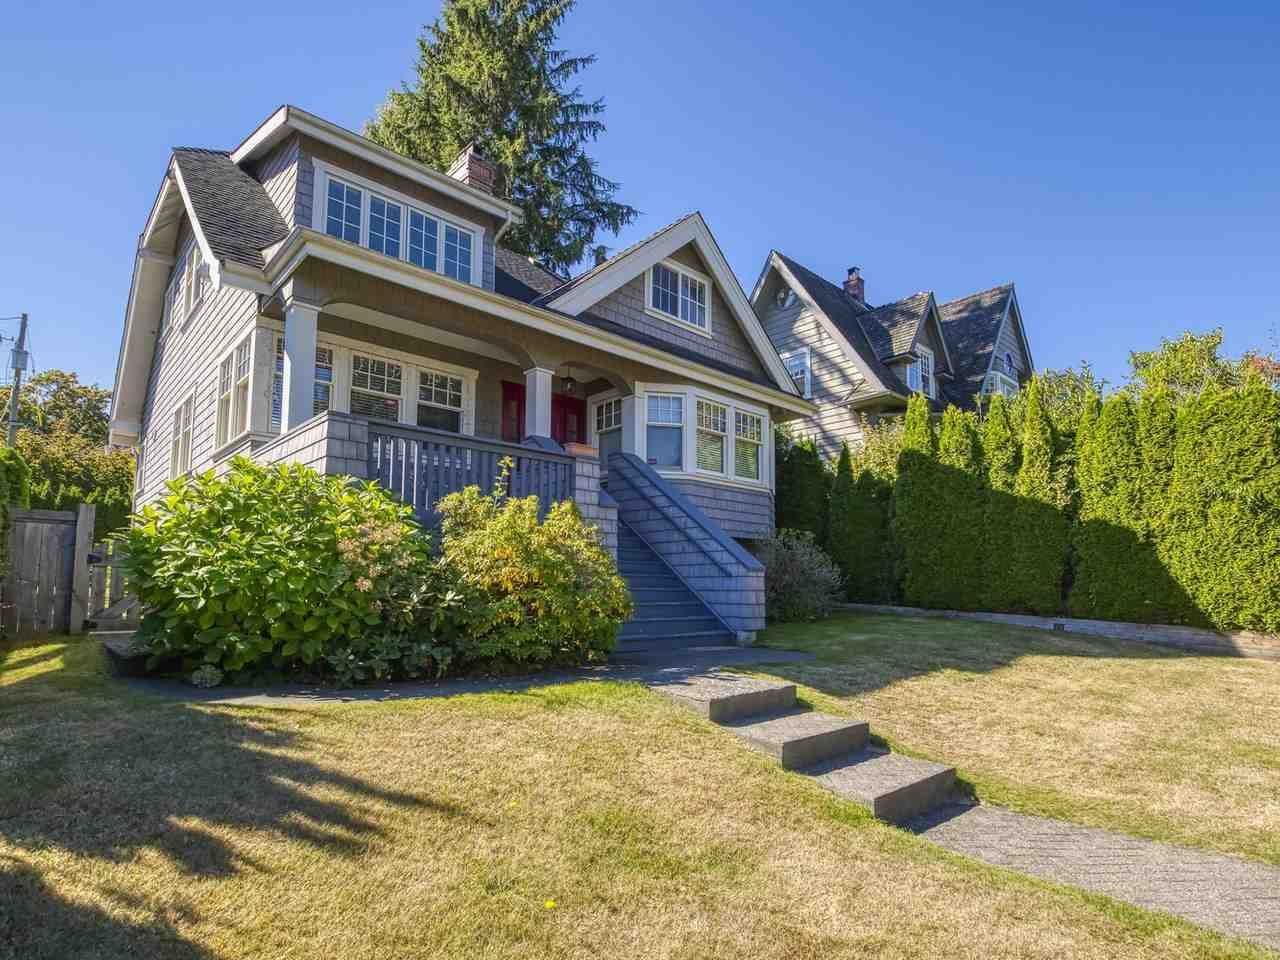 Main Photo: 4532 W 6TH AVENUE in Vancouver: Point Grey House for sale (Vancouver West)  : MLS®# R2516484